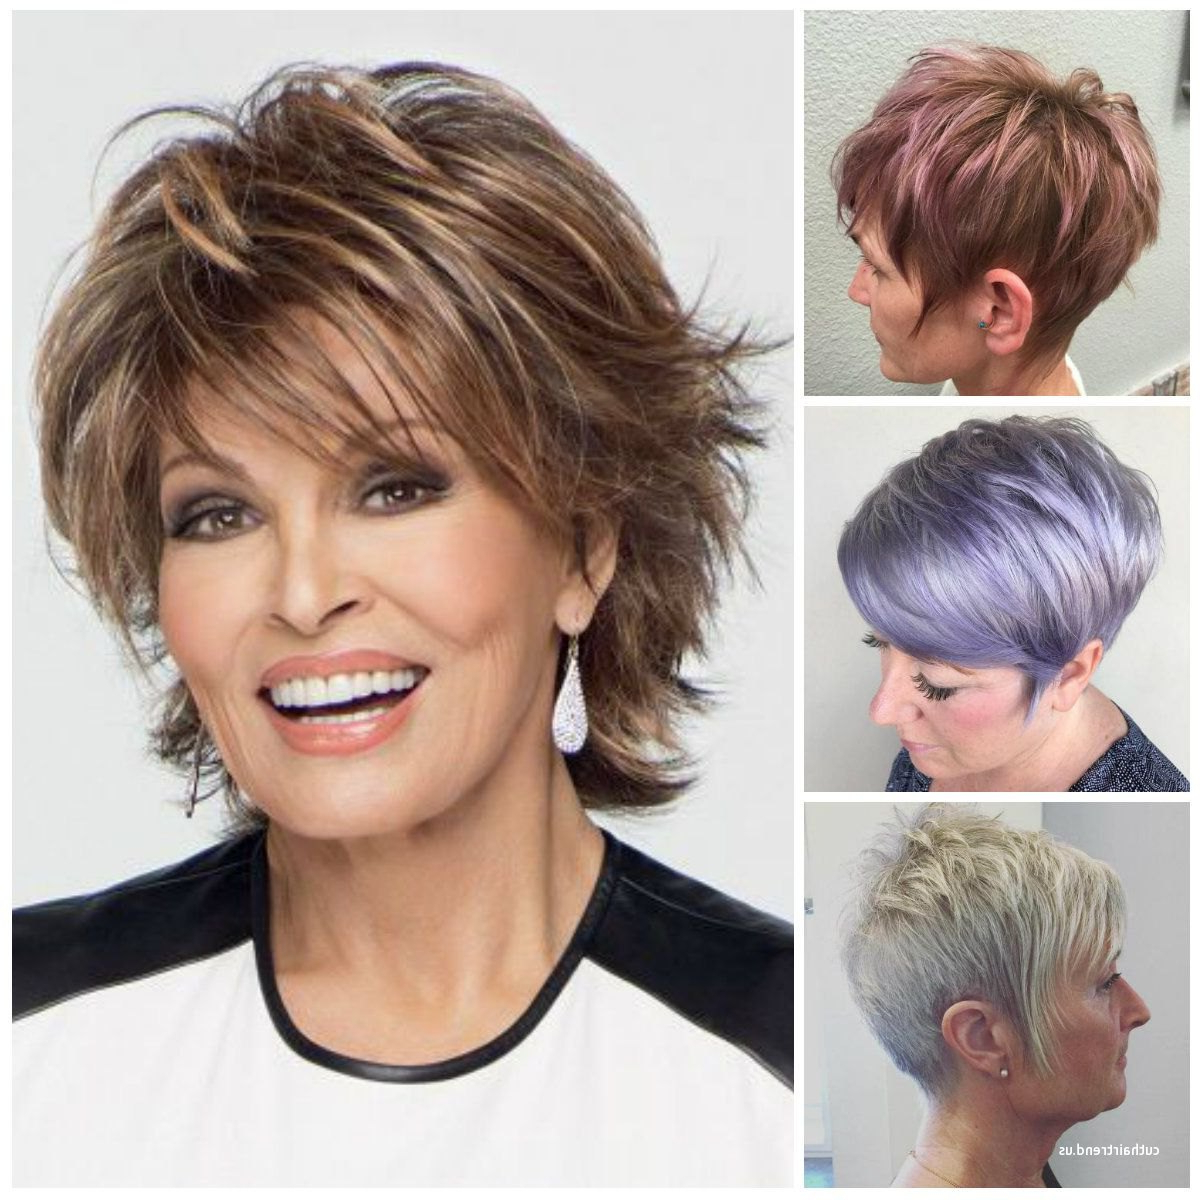 Luxury Mature Short Hairstyles With Short Hairstyles For Mature Women (View 9 of 25)